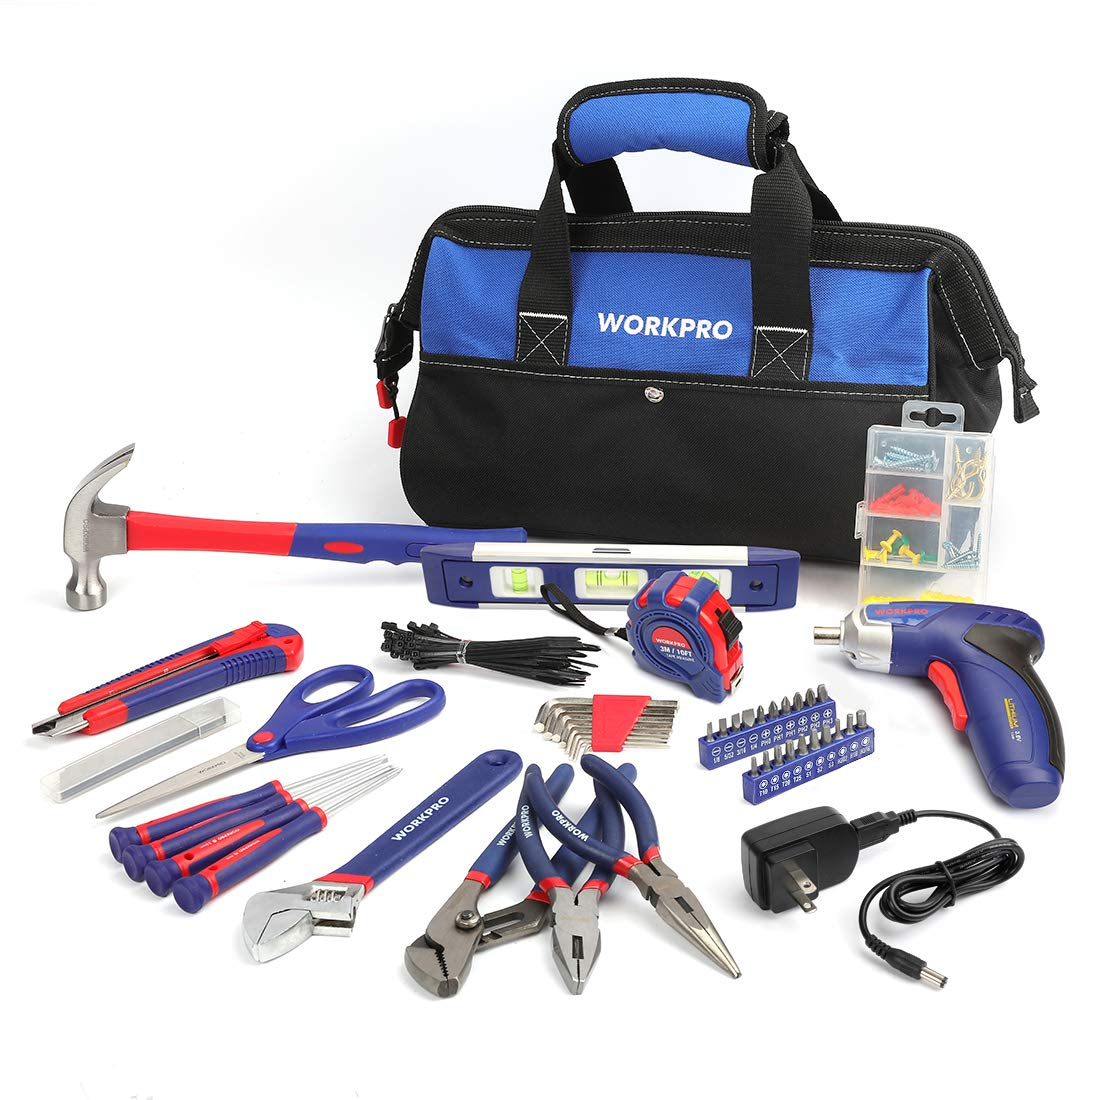 WORKPRO 125-piece Compact Tool Kit - Home Repairing Set with 3.6V Rechargeable Screwdriver and 13-Inch Tool Bag